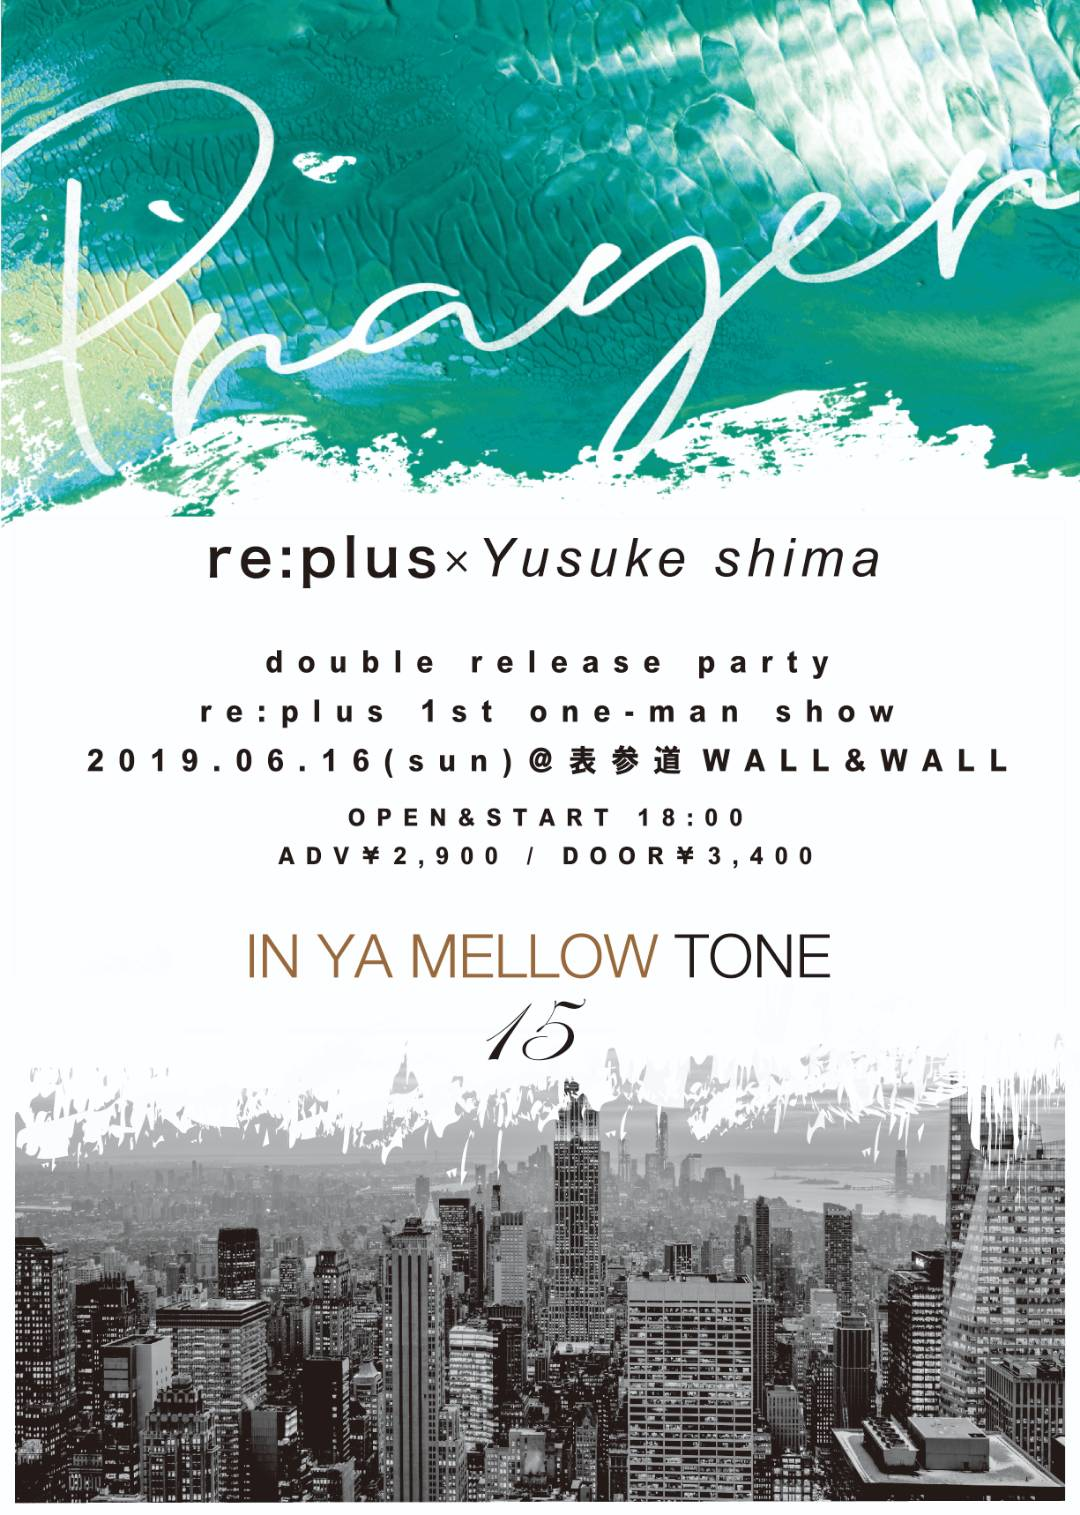 re:plus 1st one man show  re:plus×Yusuke Shima『Prayer』& 『IN YA MELLOW TONE 15』 double release party